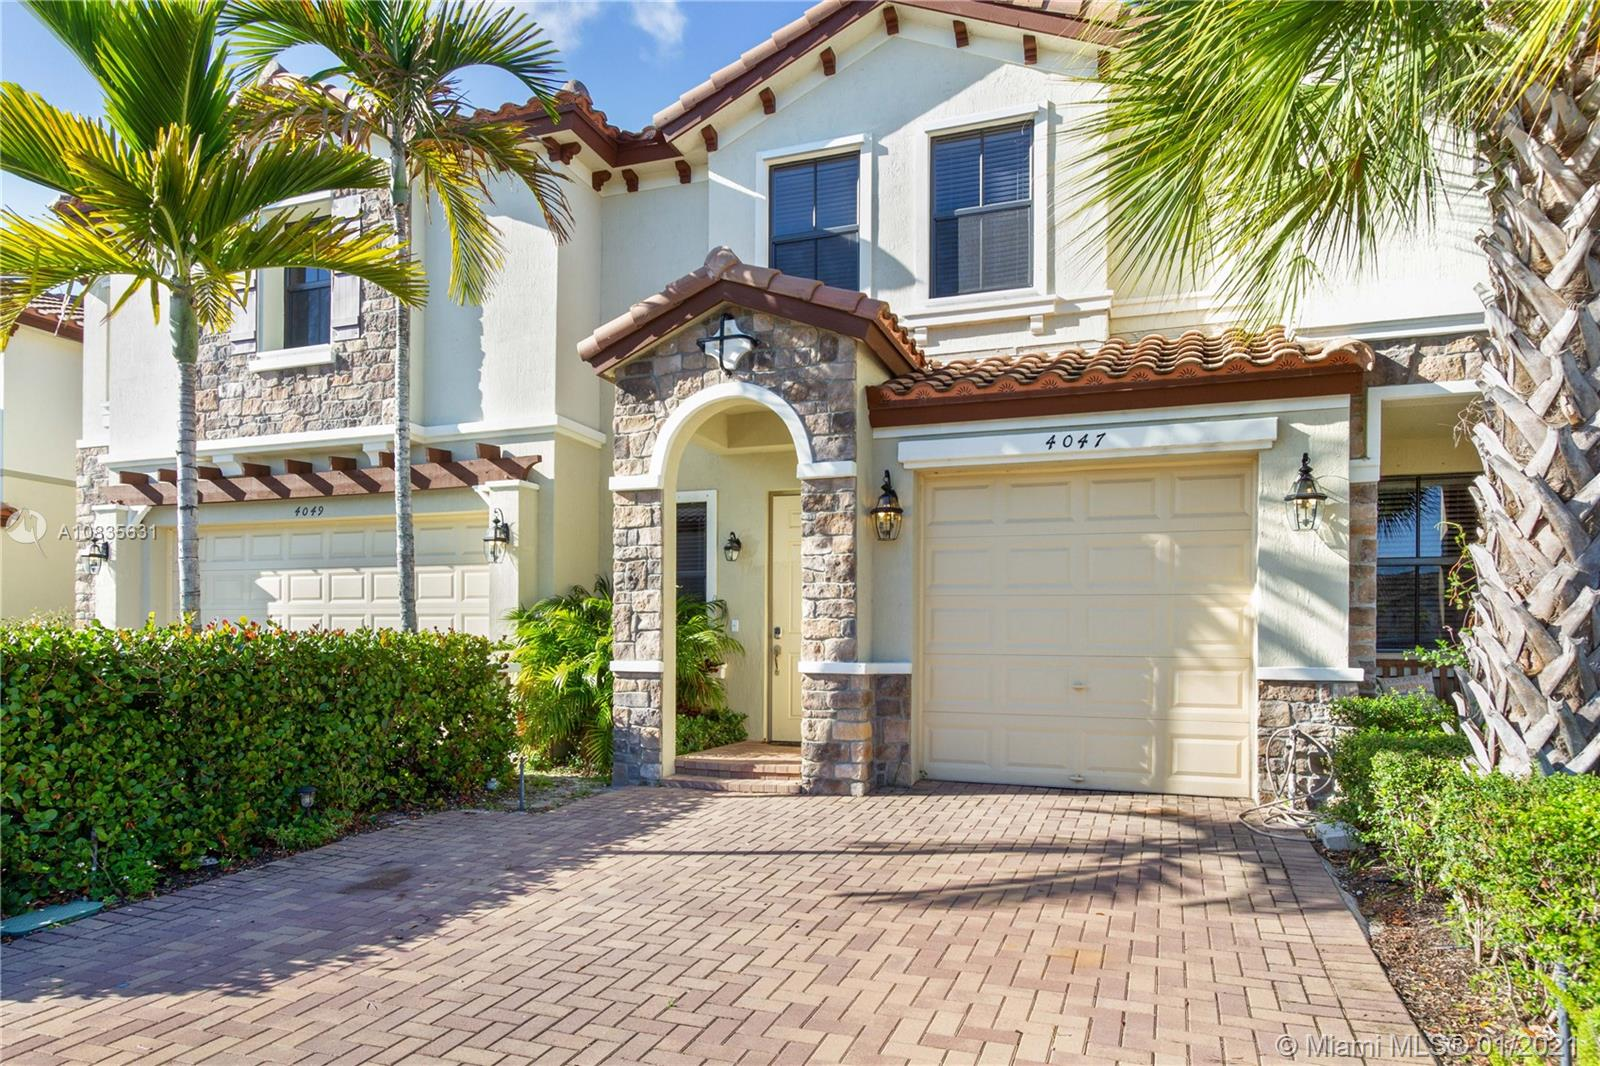 4047  Allerdale Pl  For Sale A10835631, FL